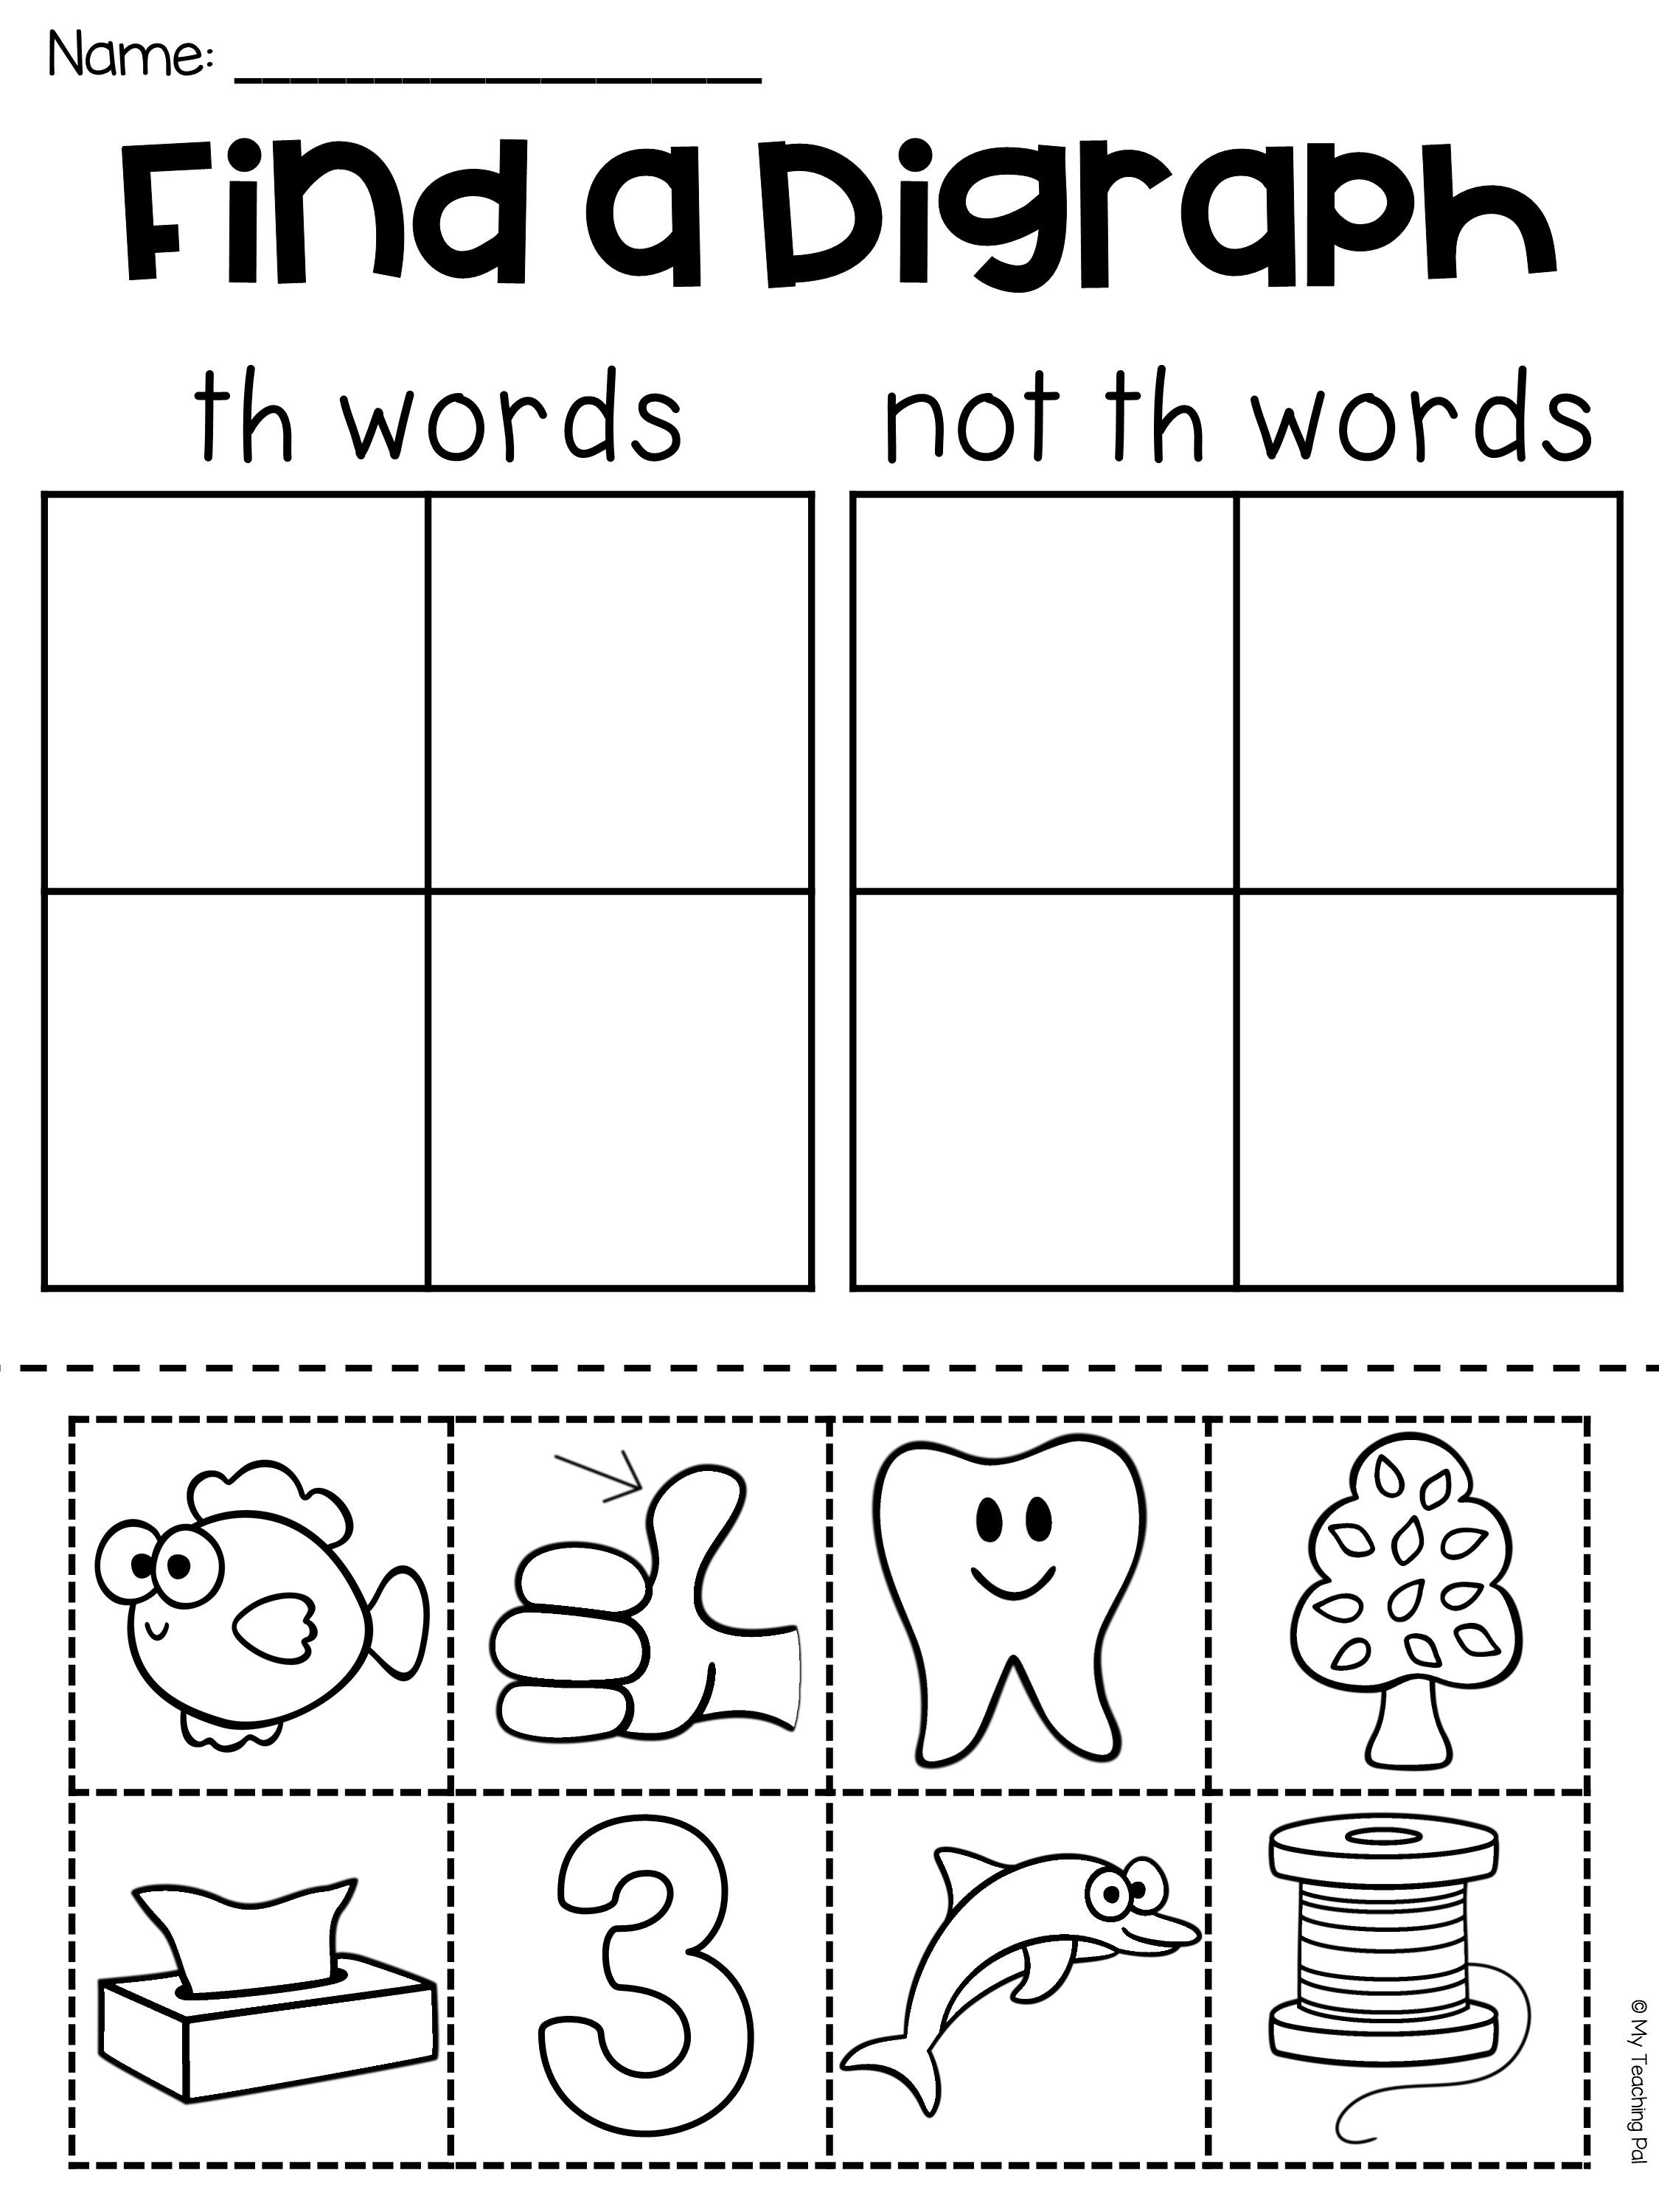 Worksheets Ch Words